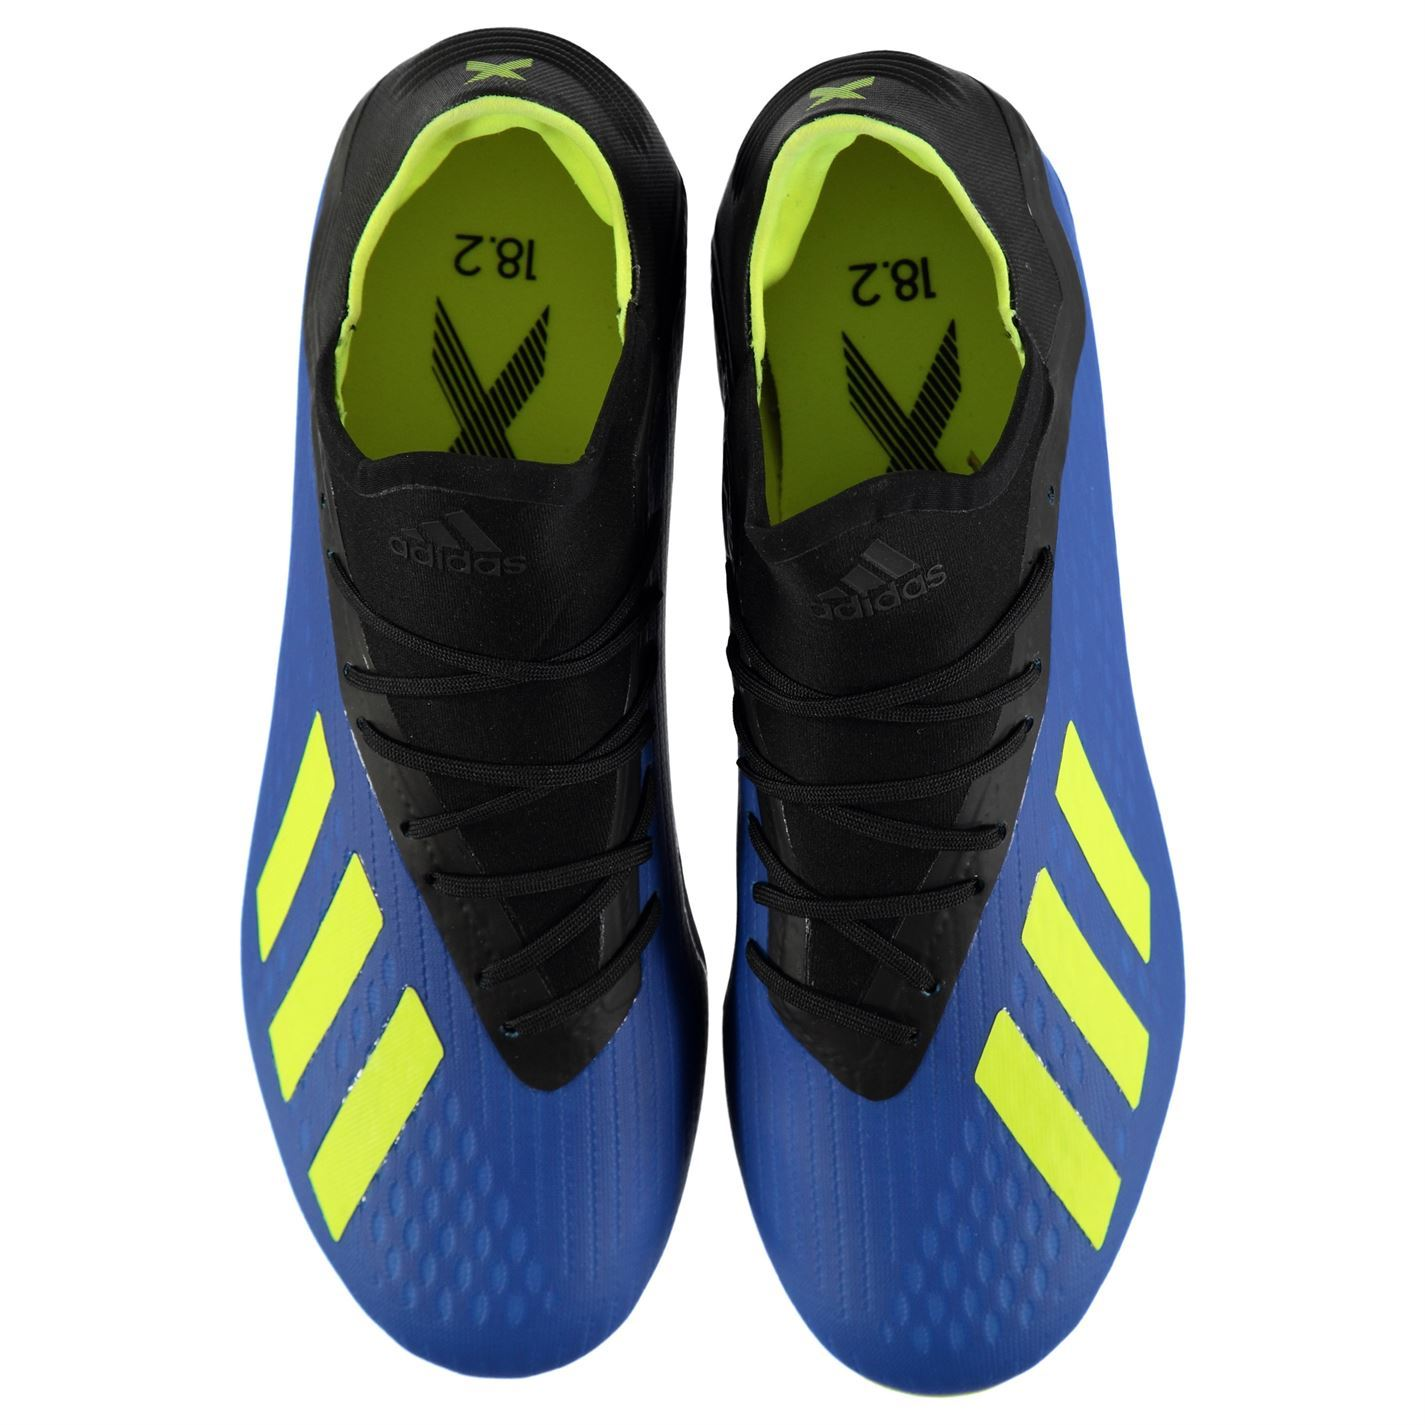 f03cb0a499be8 adidas X 18.2 FG Firm Ground Football Boots Mens Blue Soccer Shoes Cleats